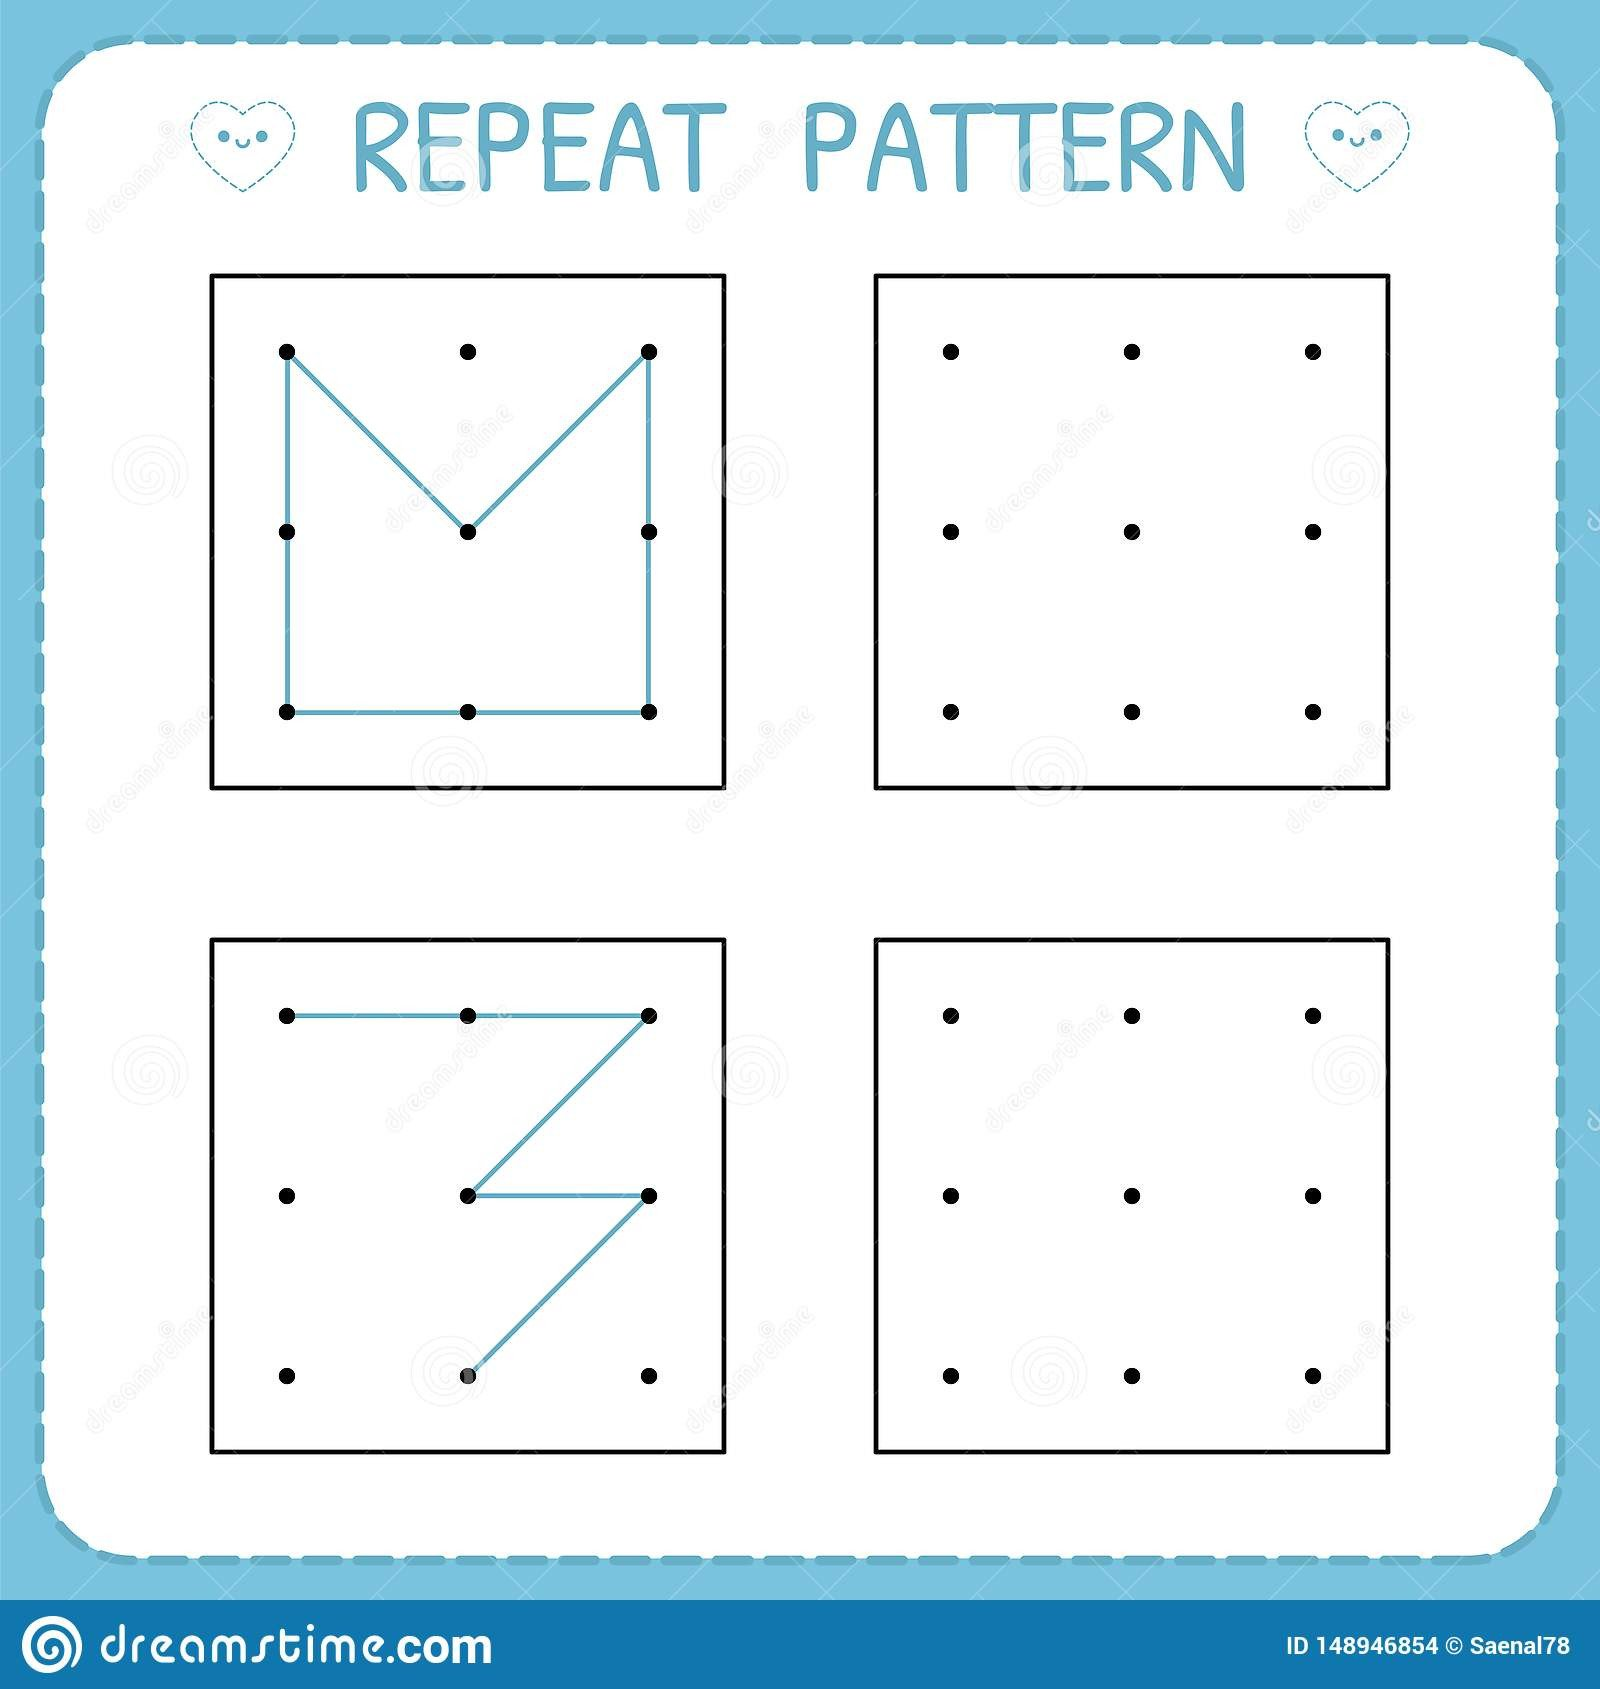 Repeated Pattern Worksheets Math Worksheet Repeat Pattern Working Pages for Kids